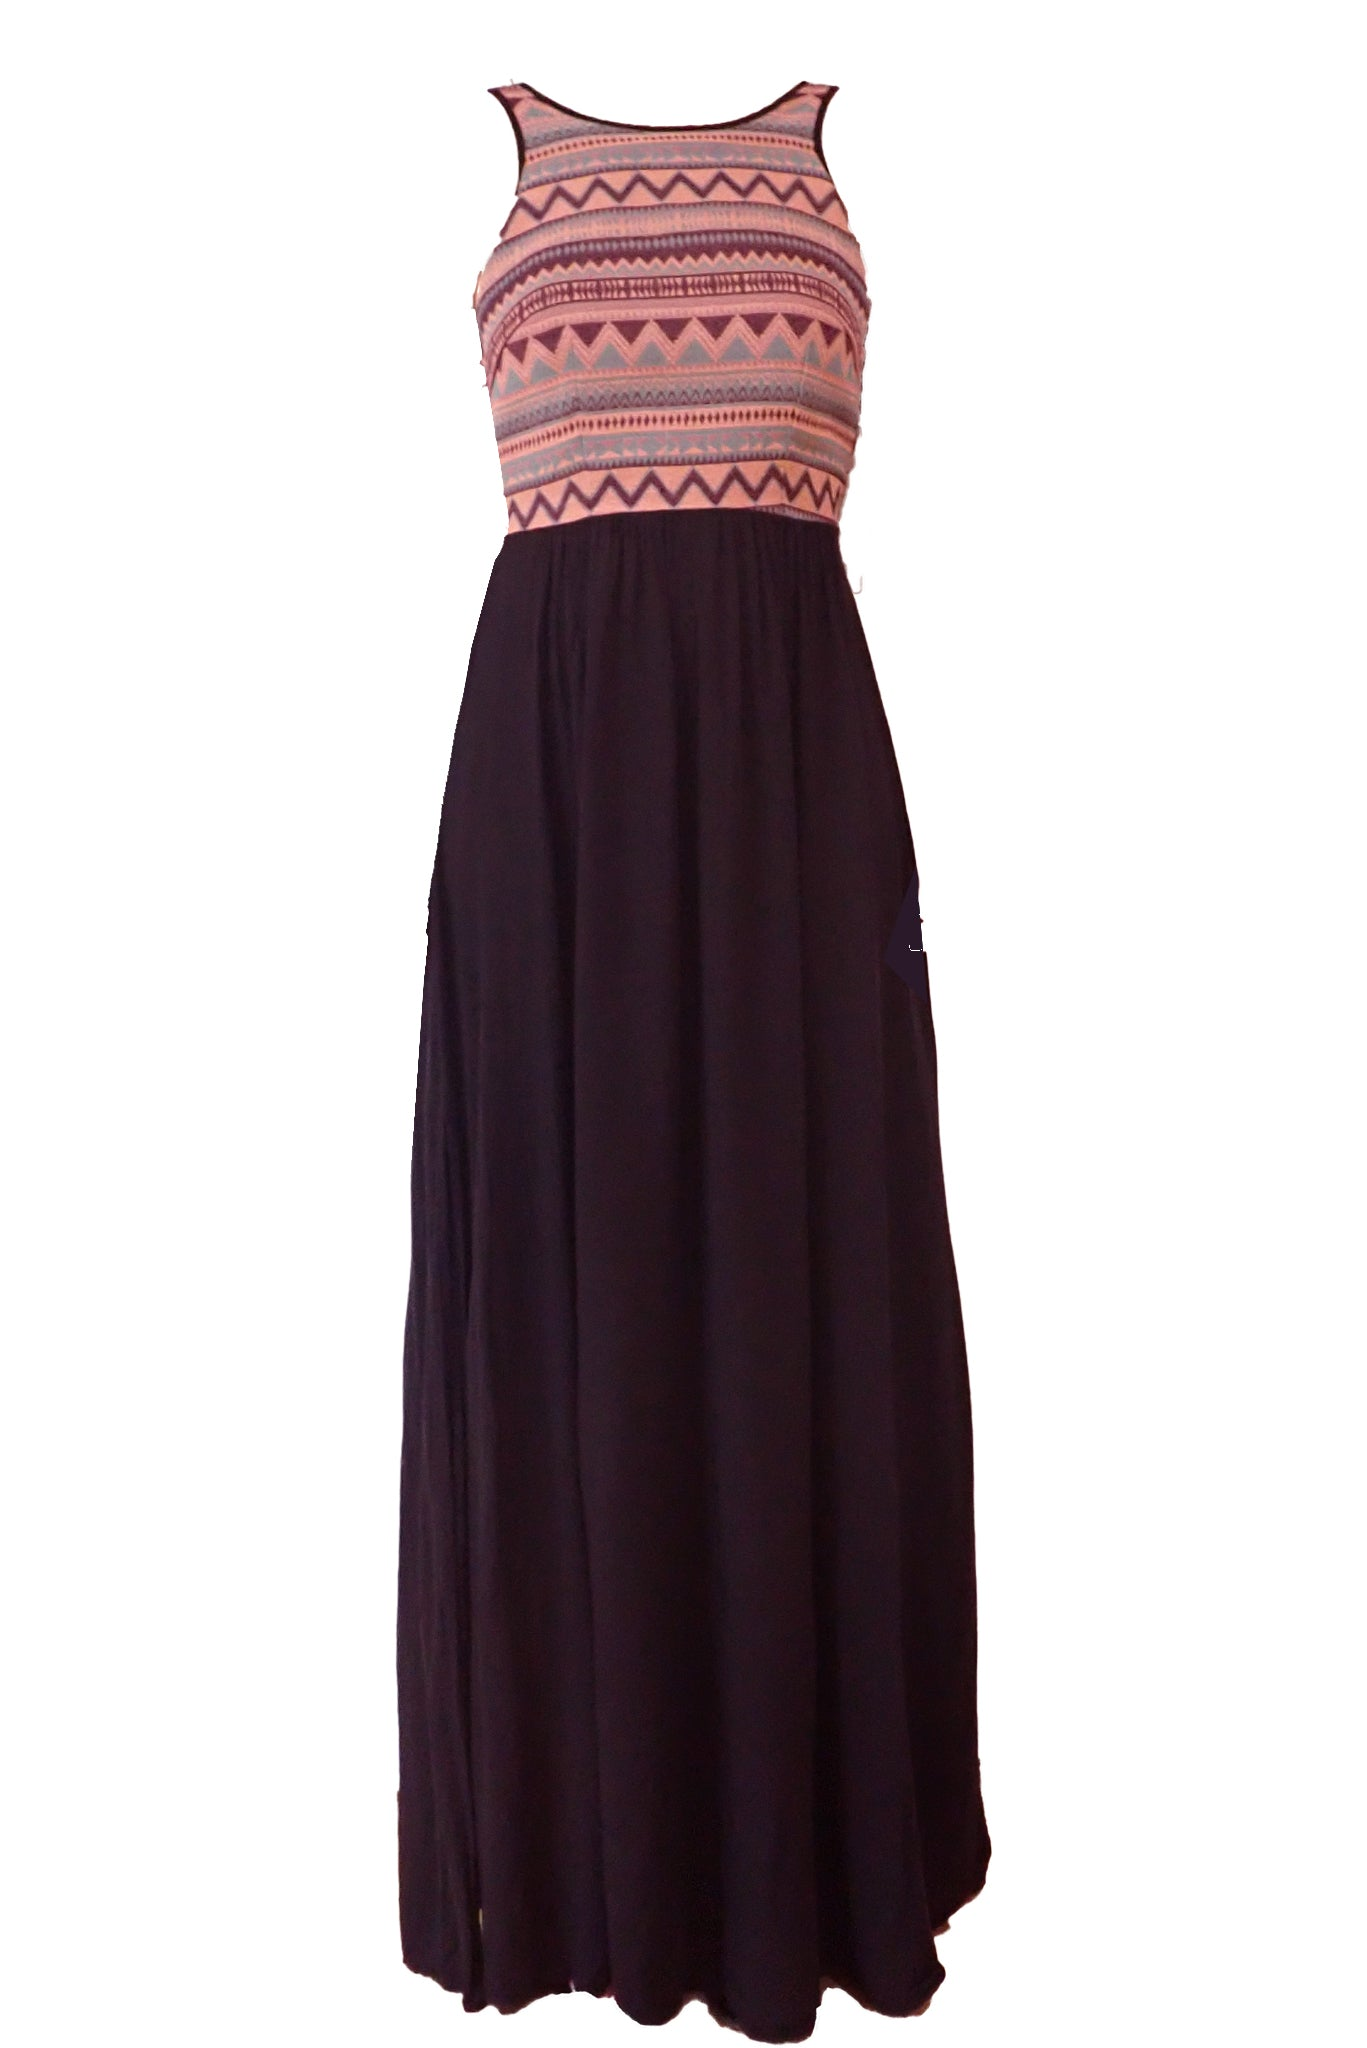 Dotti cutaway top maxi dress